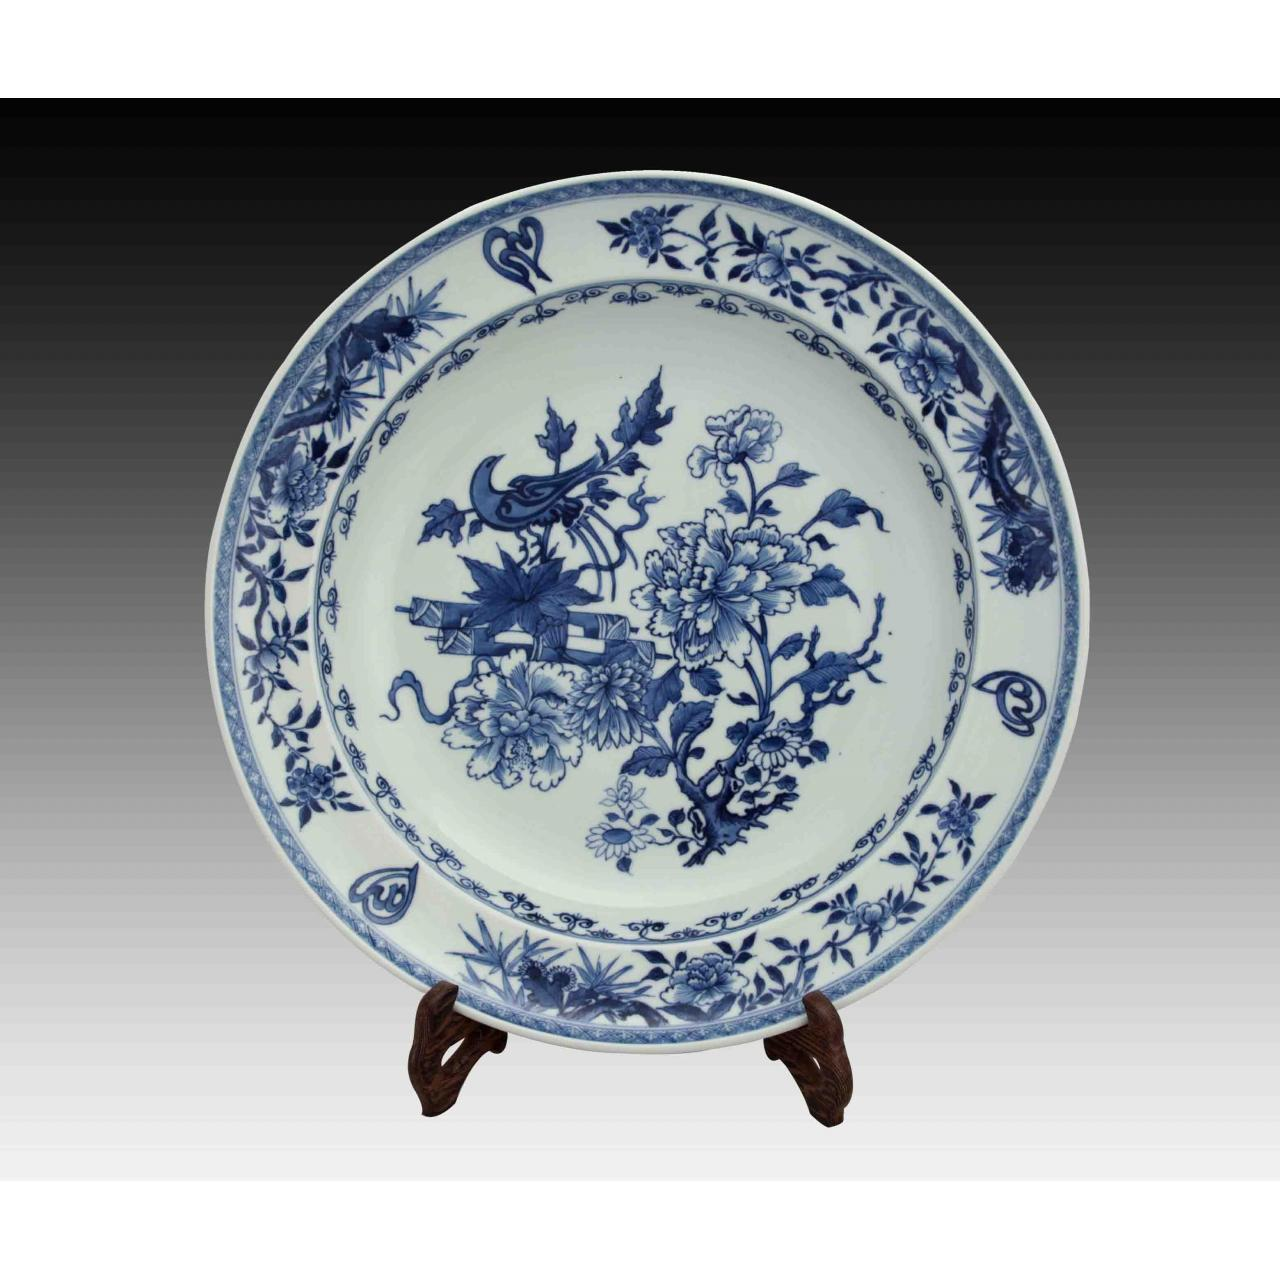 Blossom of Fortune Flowers Blue-and-white Porcelain Plate